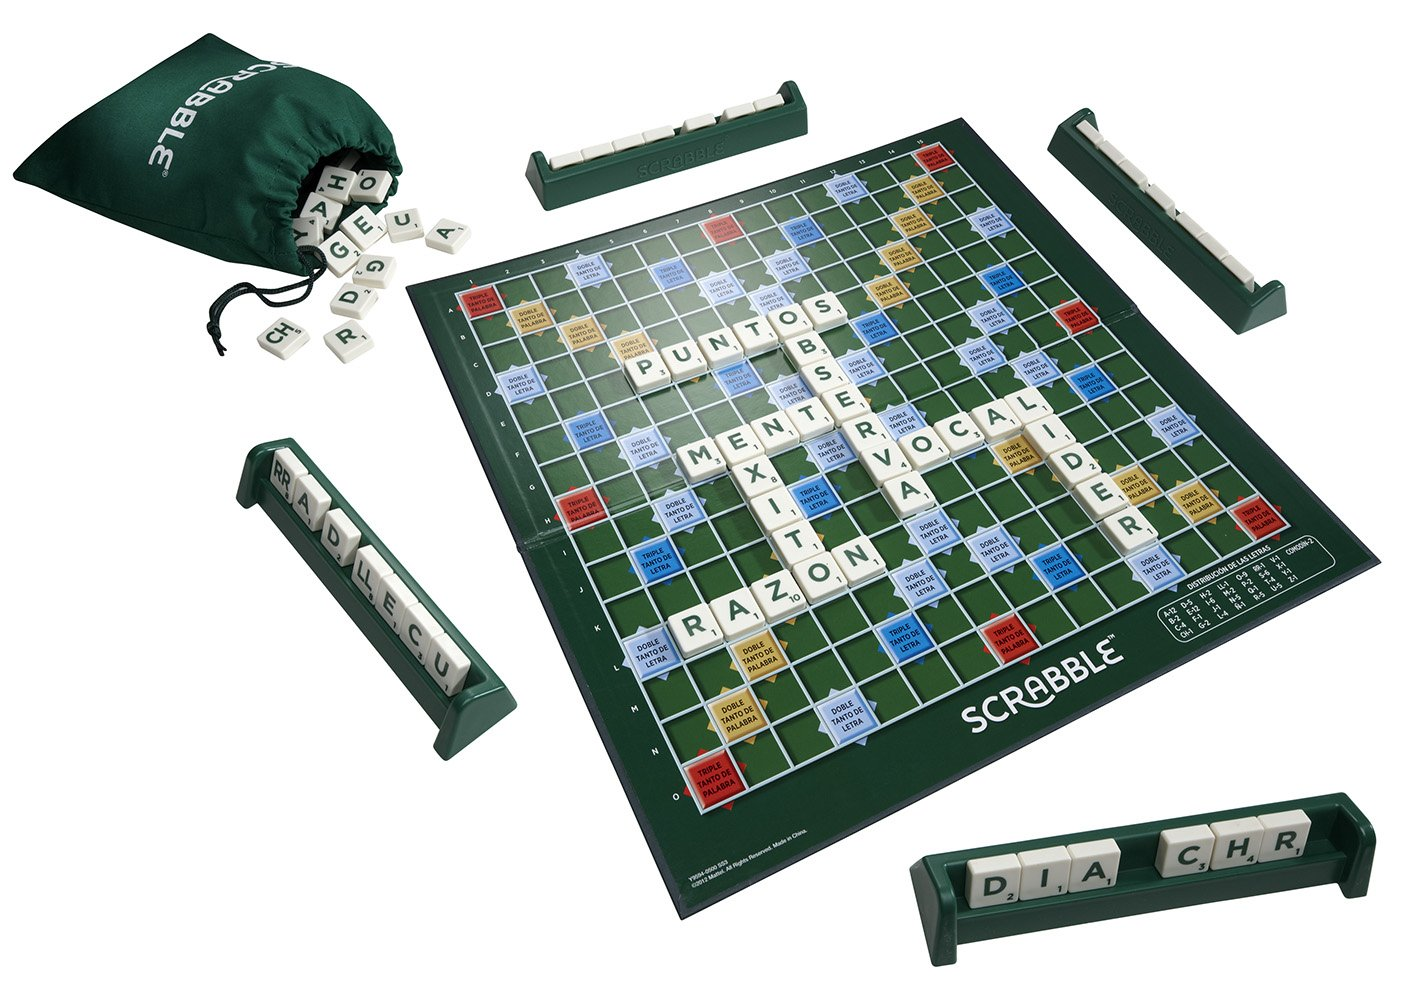 Mattel Games Scrabble Original Juego De Mesa Mattel Y9594 Amazon